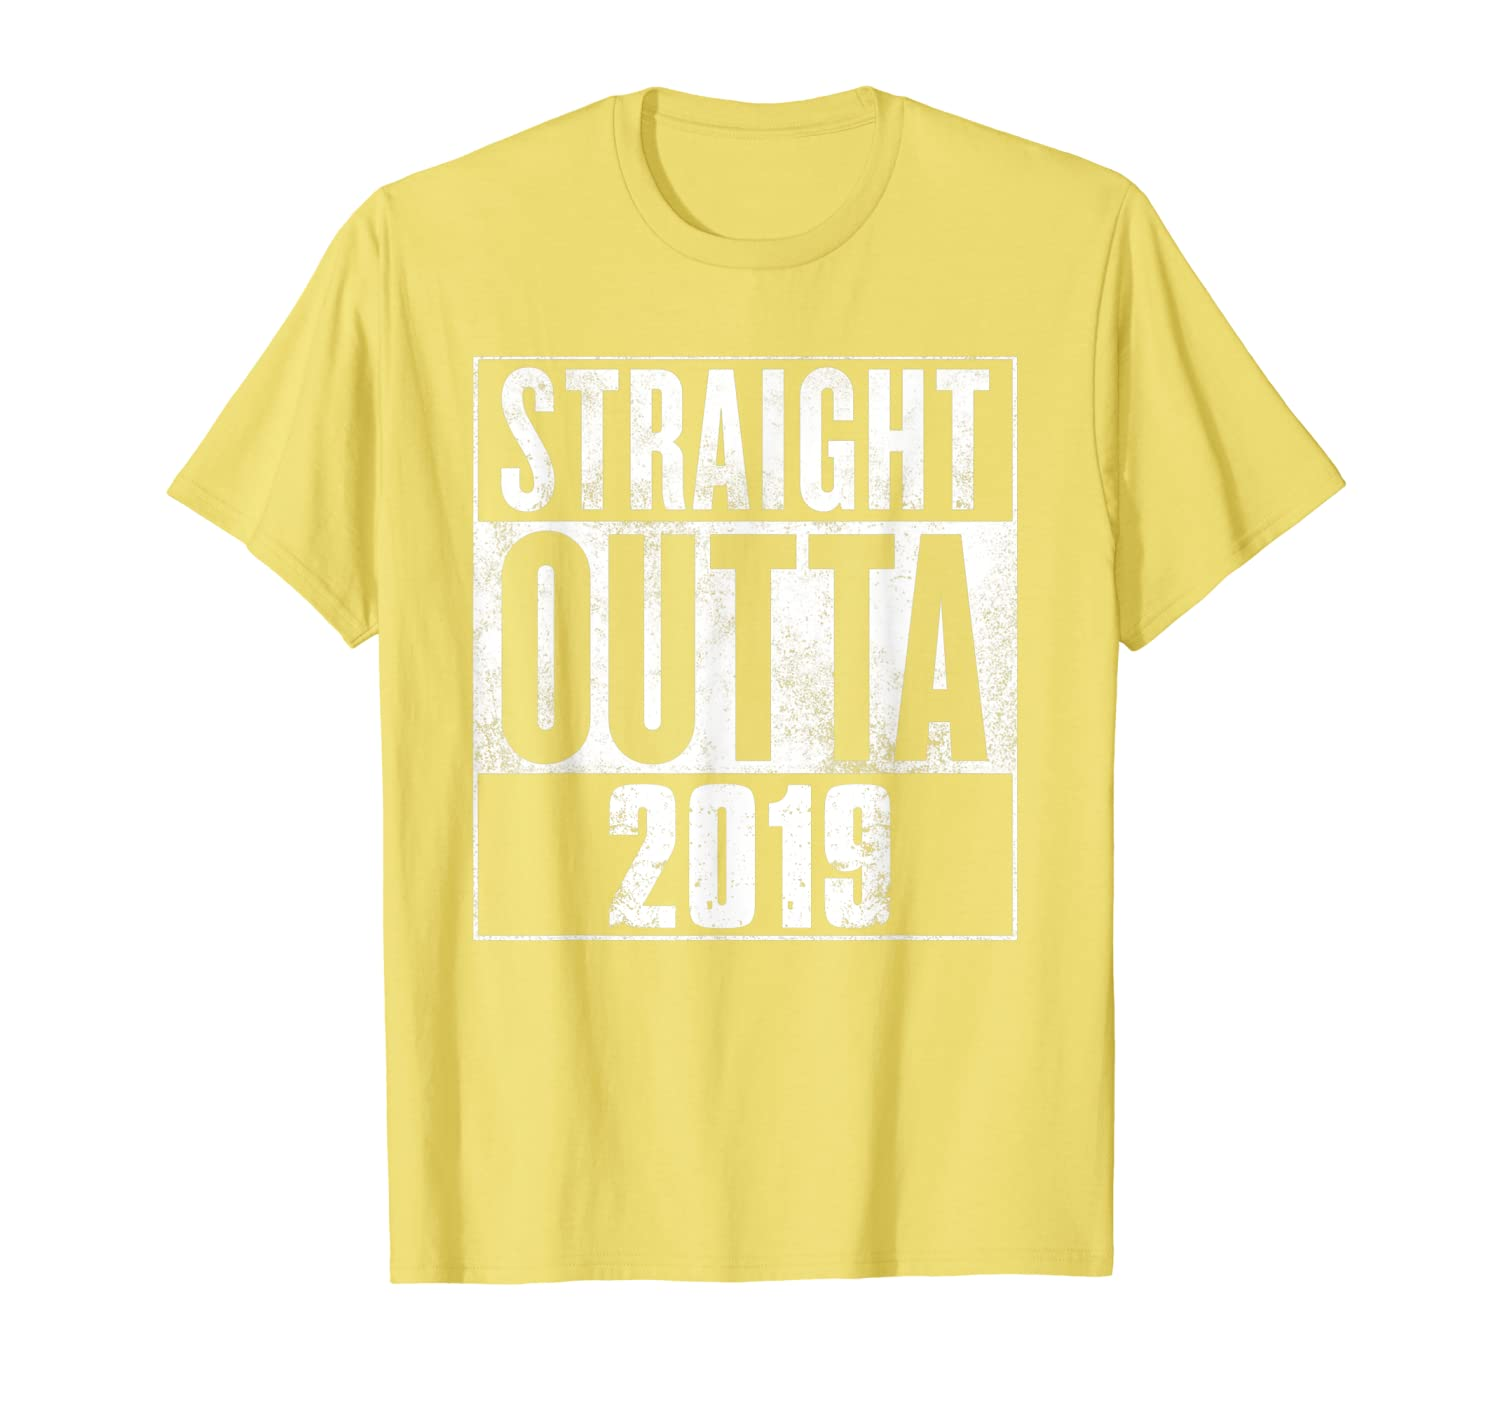 New Years Eve, Silvester, Straight, outta 2019, funny,saying T-Shirt